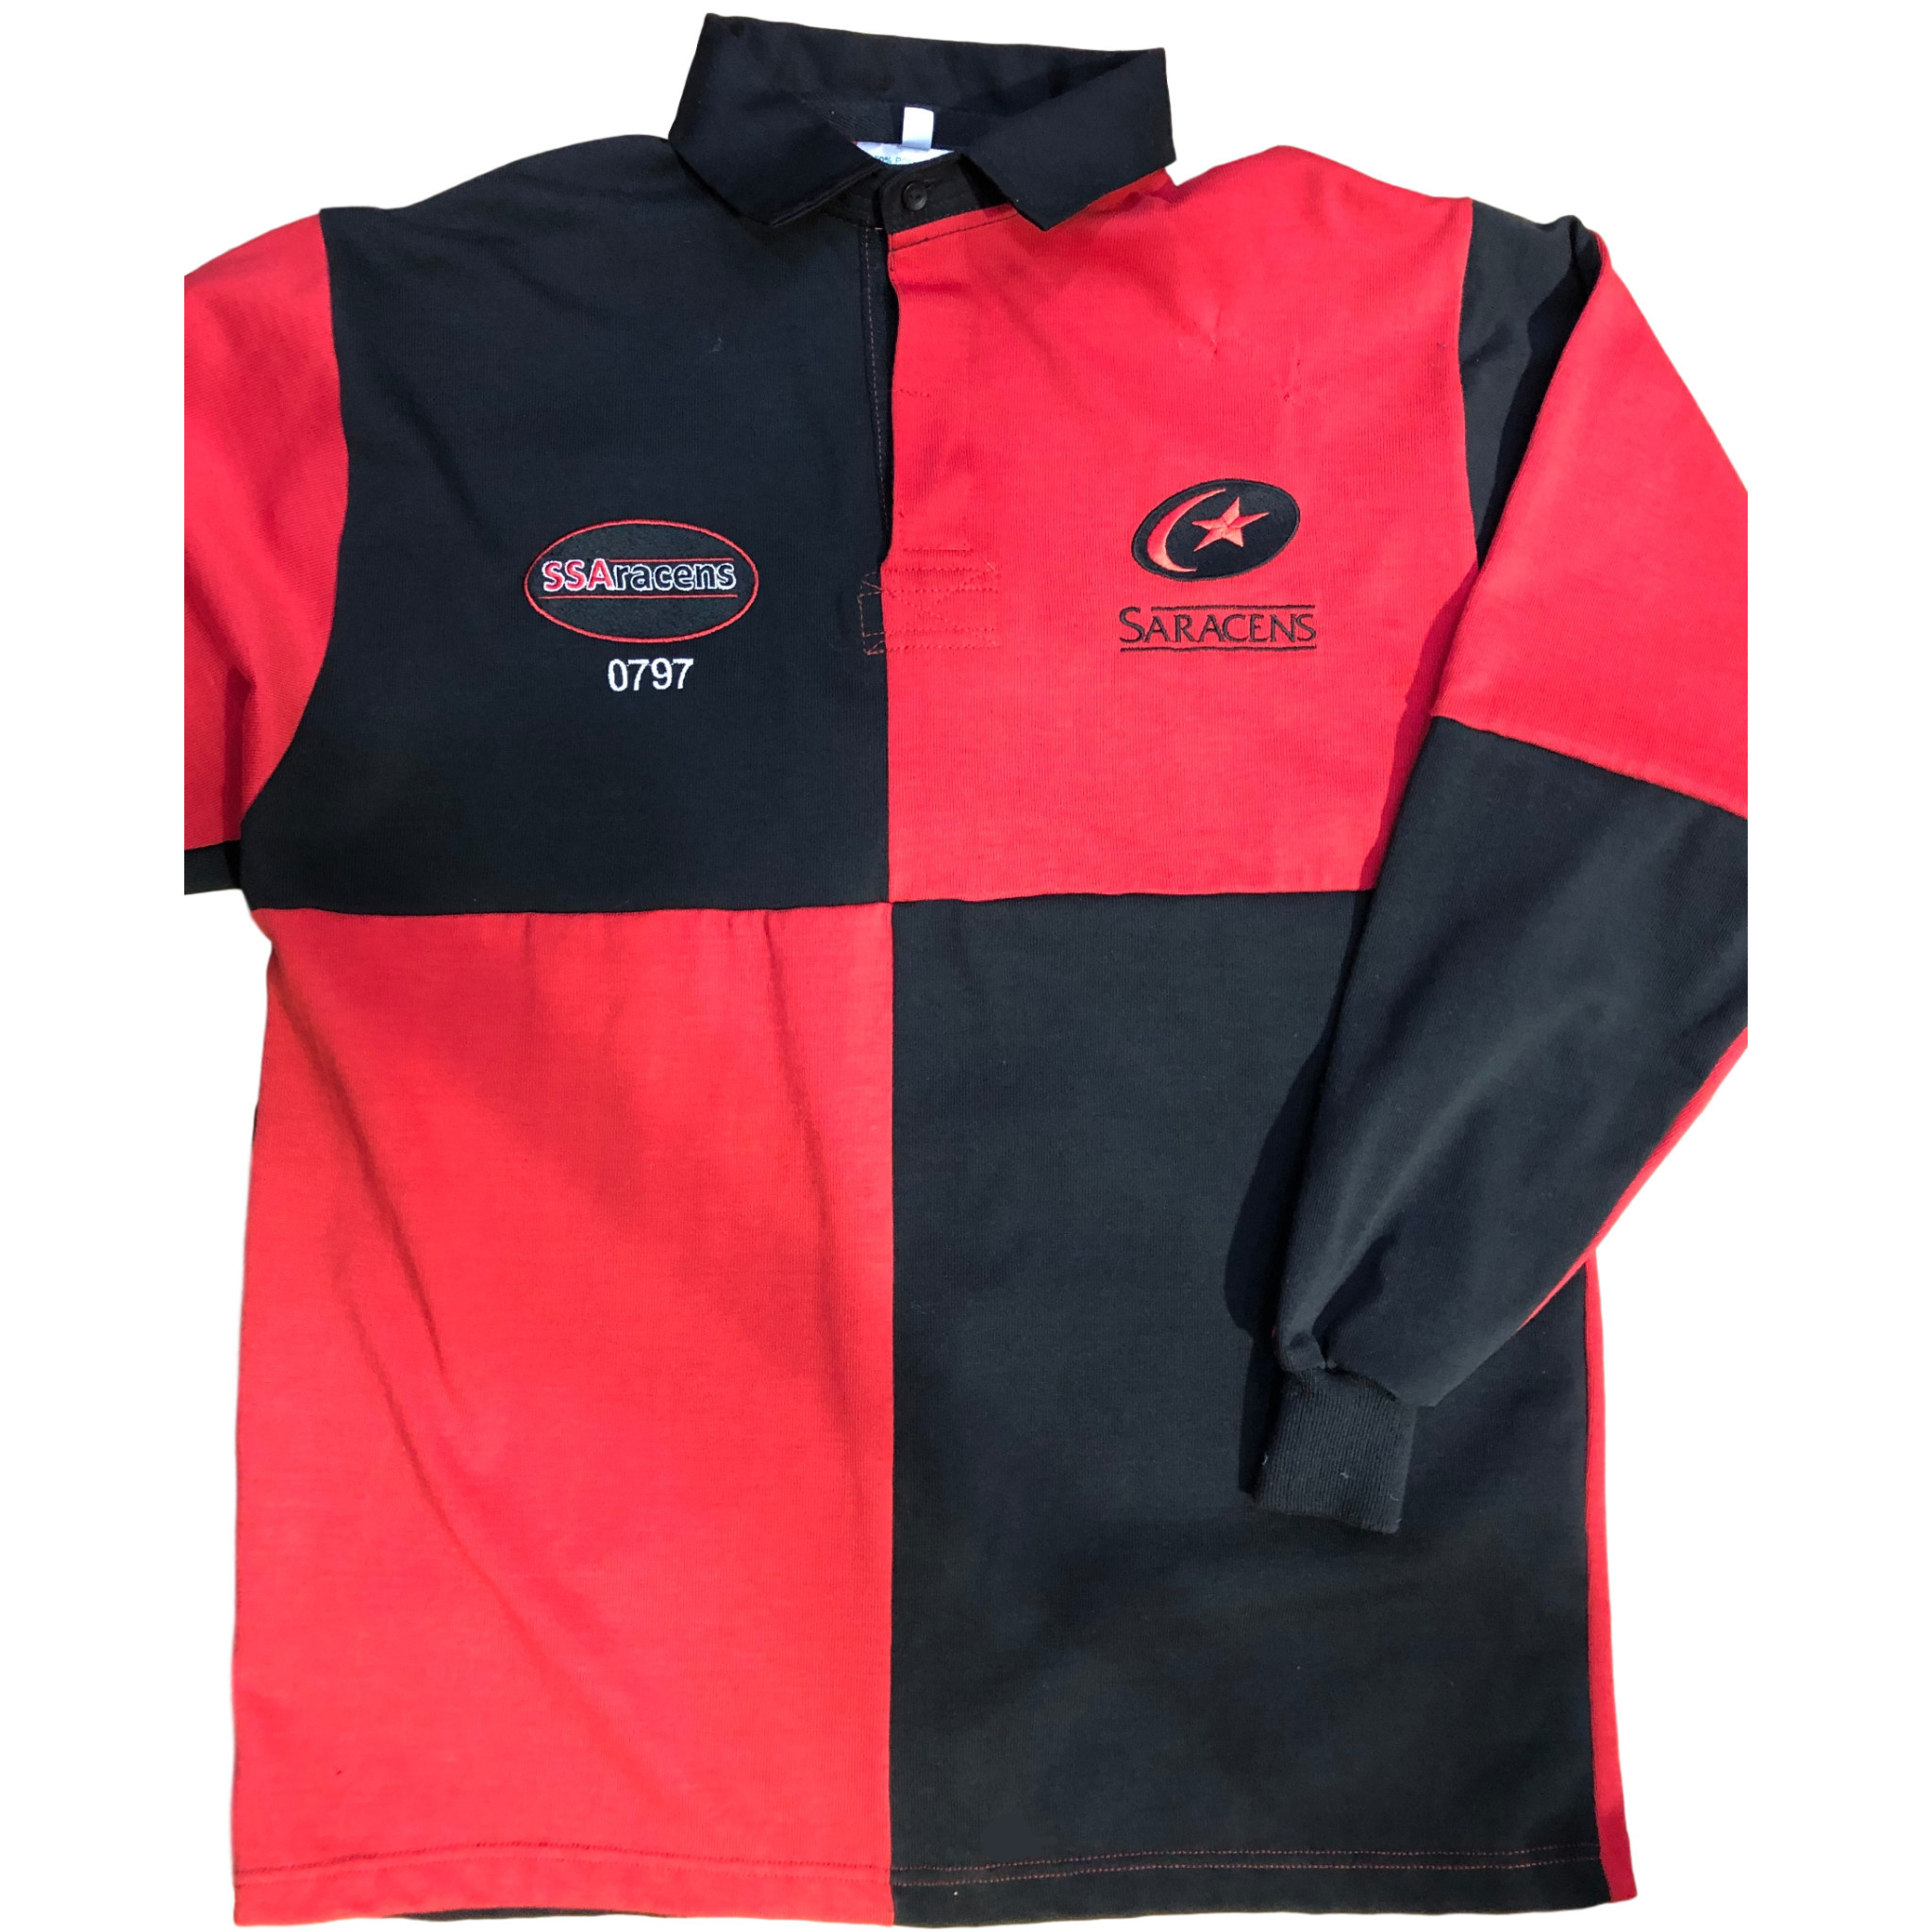 Premium Force Adults SSA Members Rugby Shirt